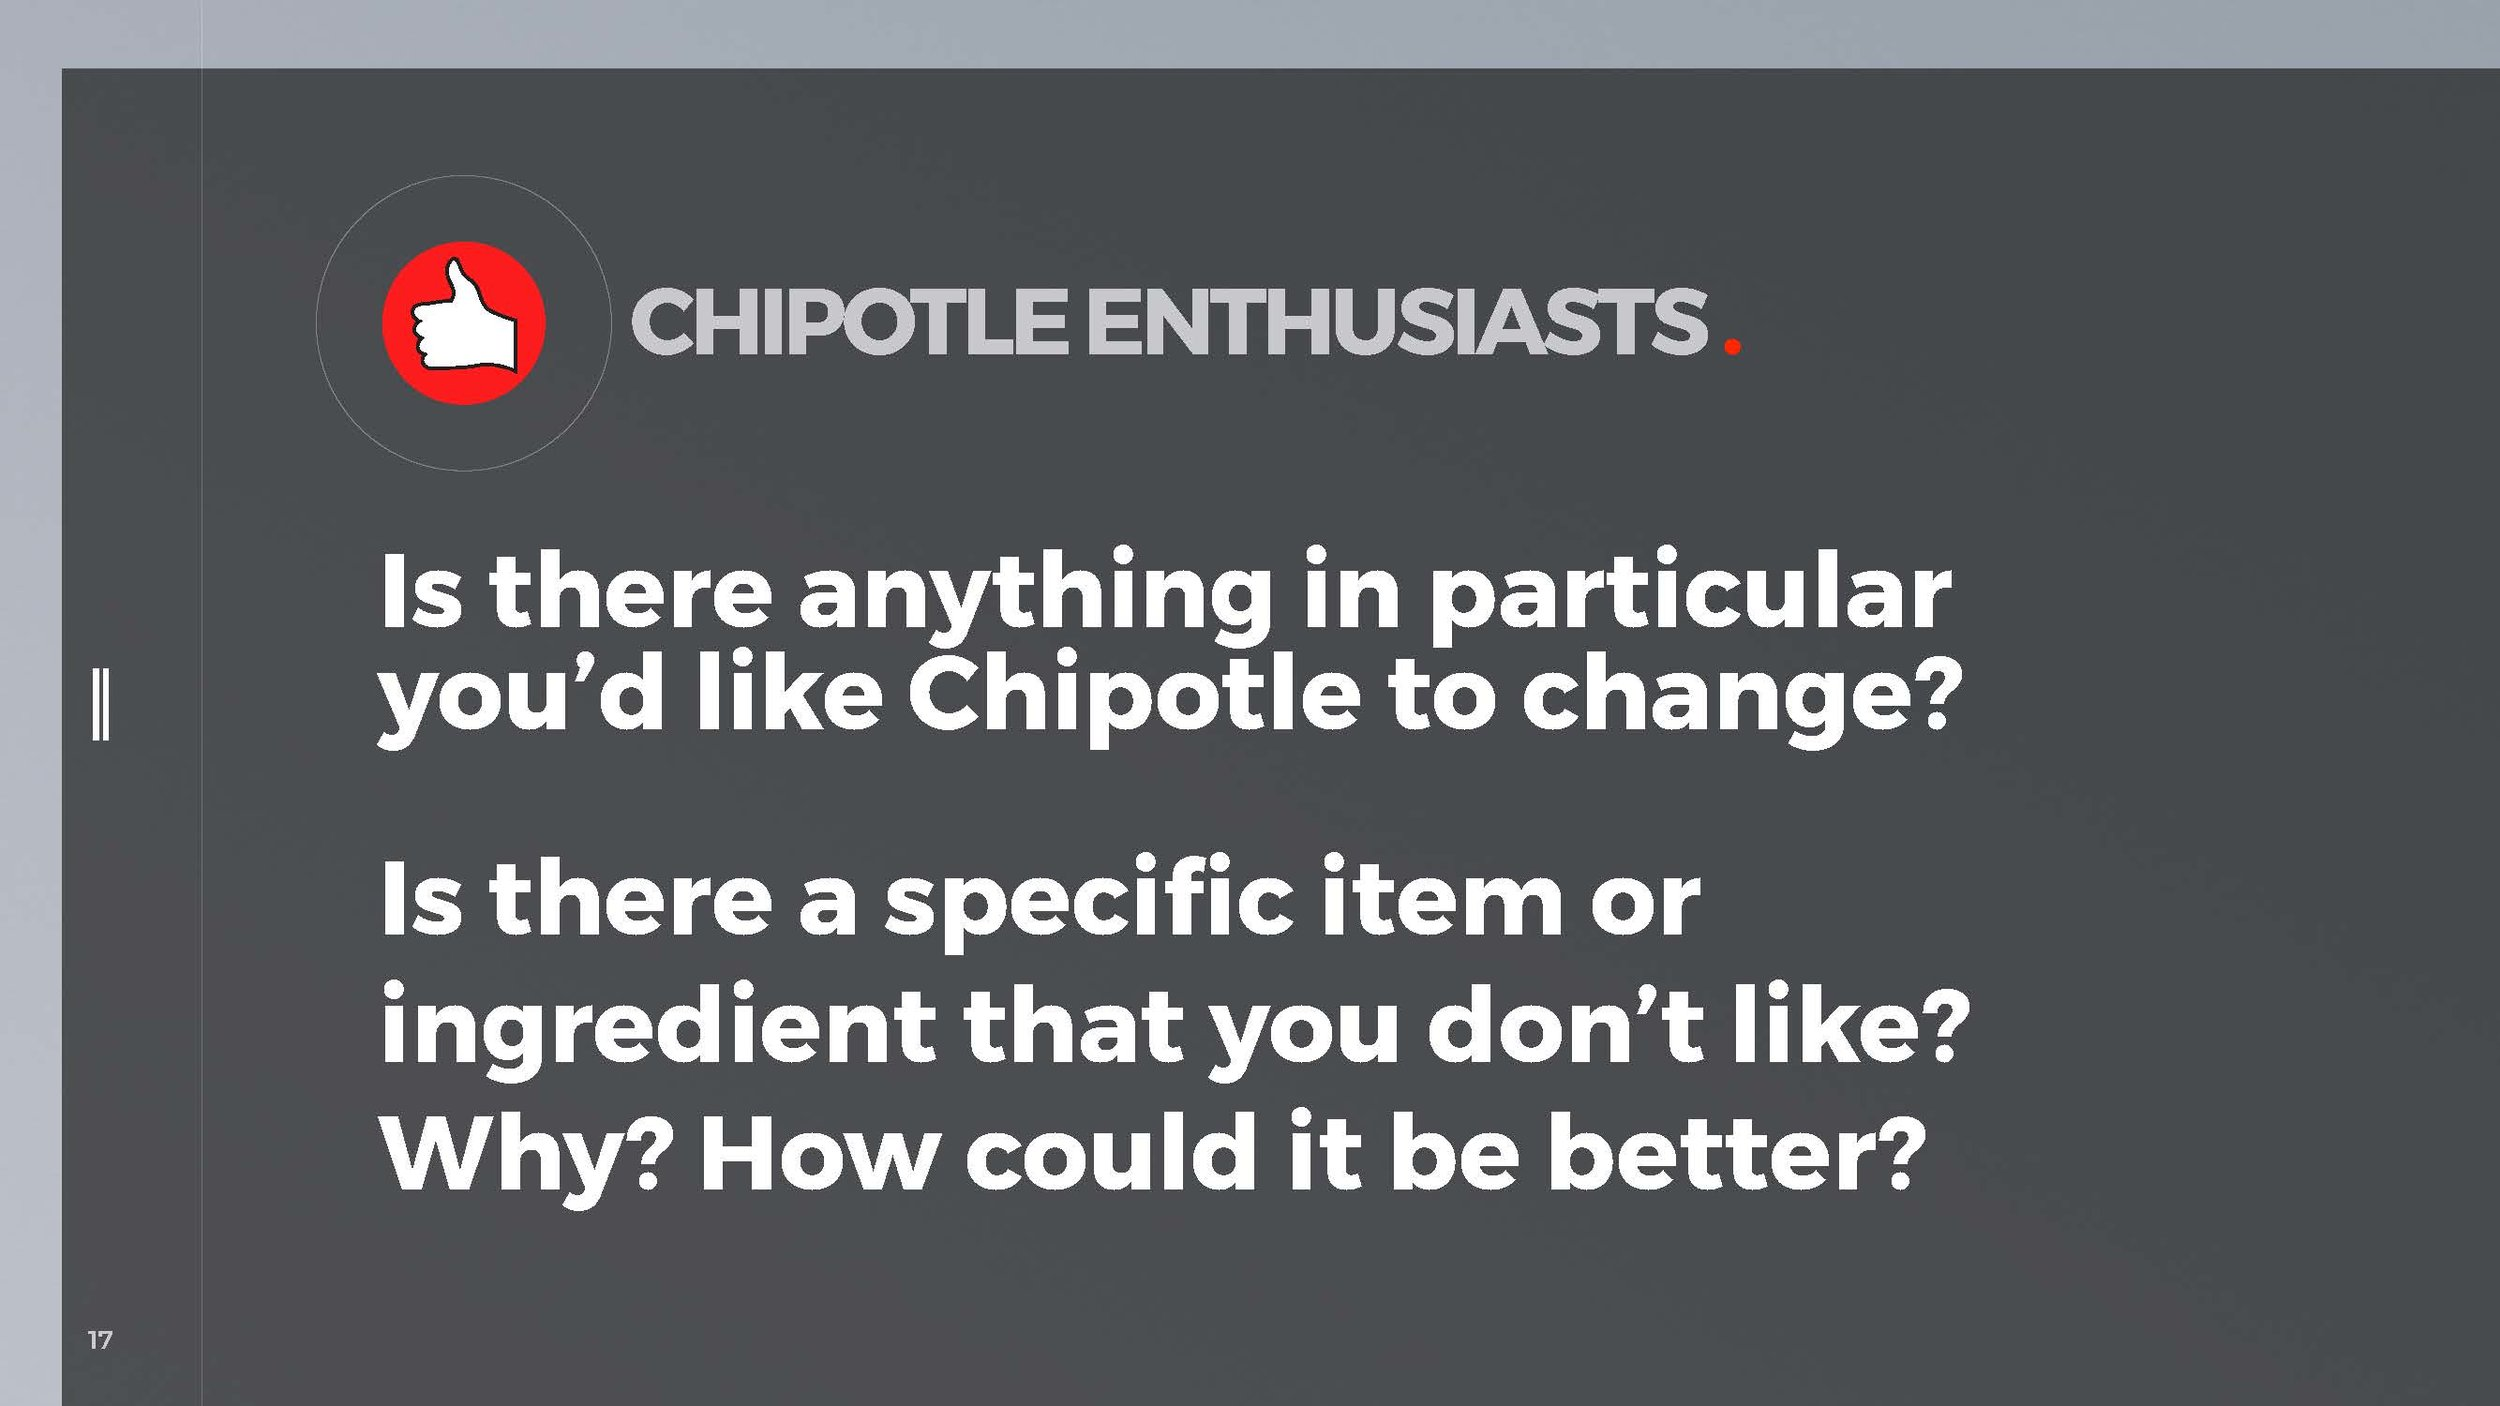 Chipotle Deck 1 Images_Page_17.jpg